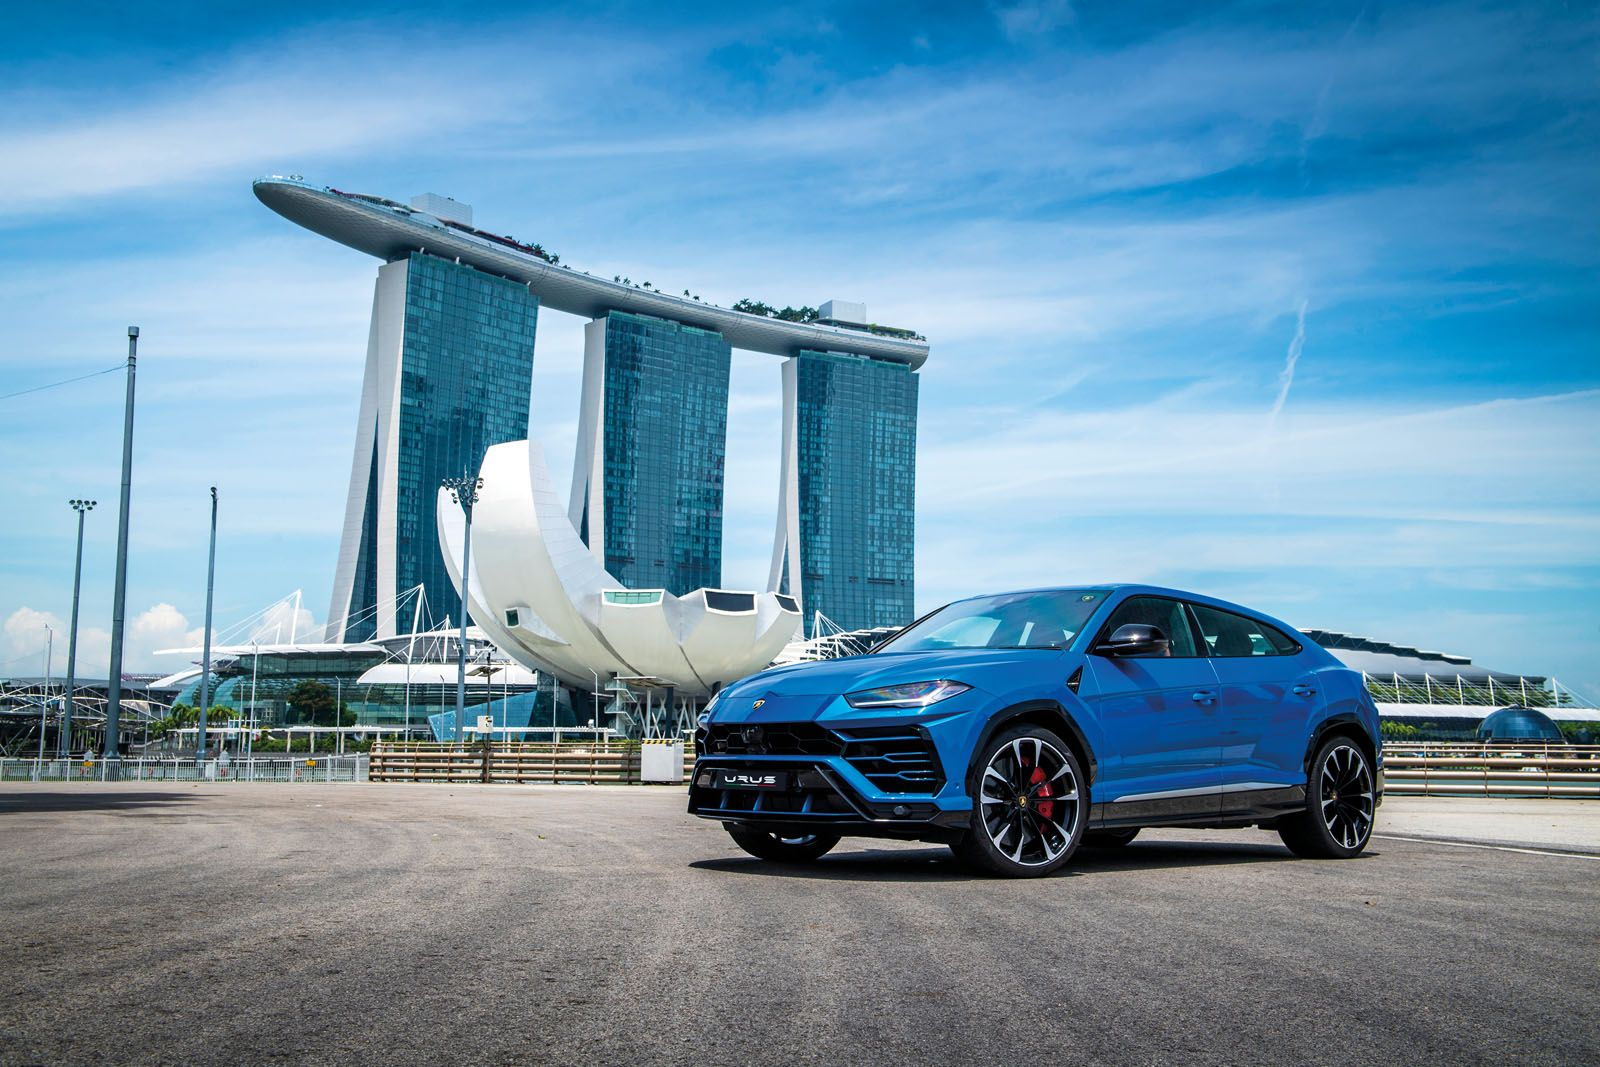 With a category-leading weight-to-power ratio of 3.38kg/hp, the Lamborghini Urus is blindingly fast. It also handles superbly across all kinds of terrain, thanks to its four‑wheel drive system with active torque vectoring.